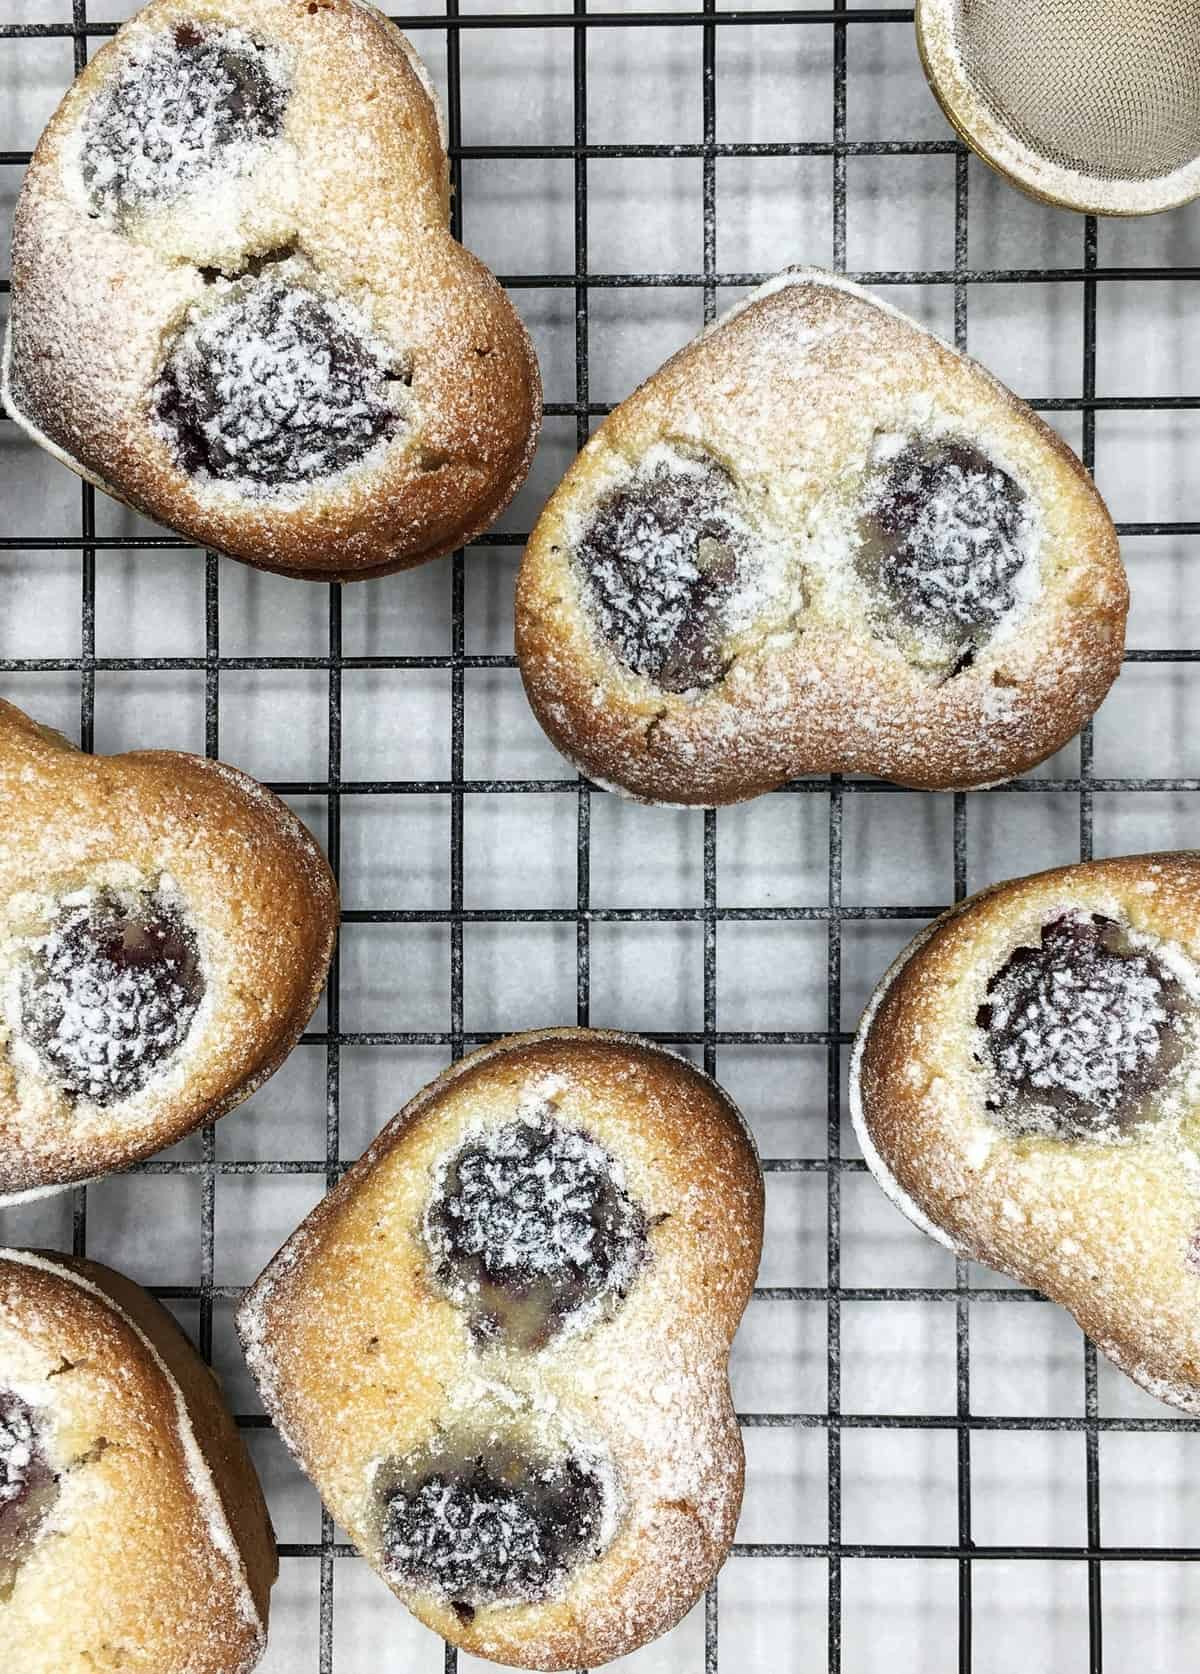 Baked friands with a tea mesh strainer on a wire rack